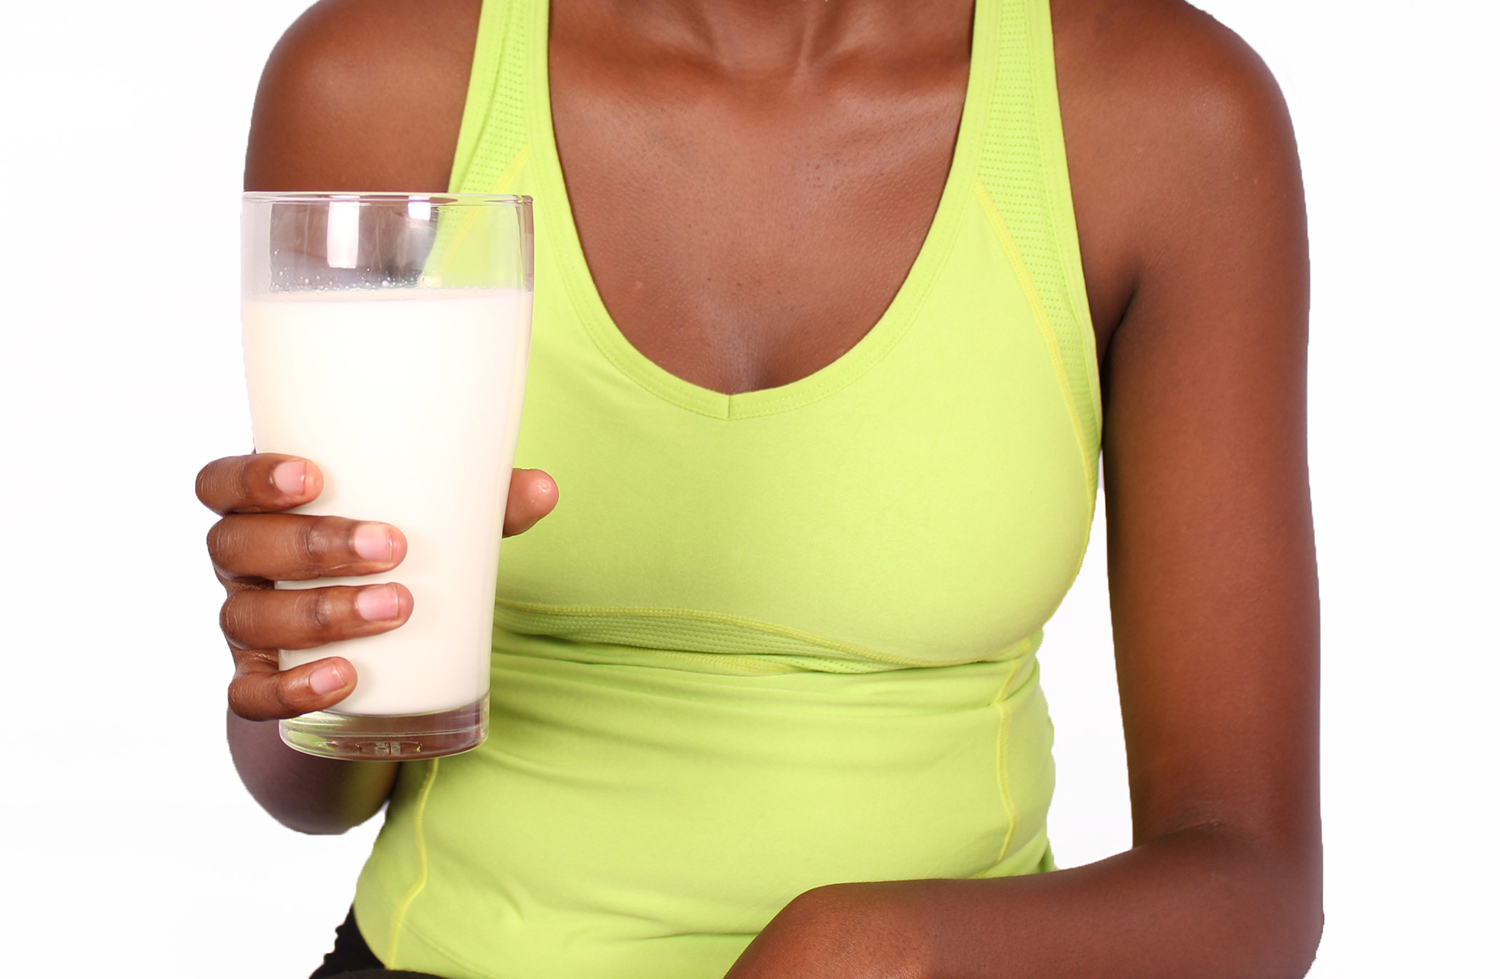 Black woman holding glass of milk